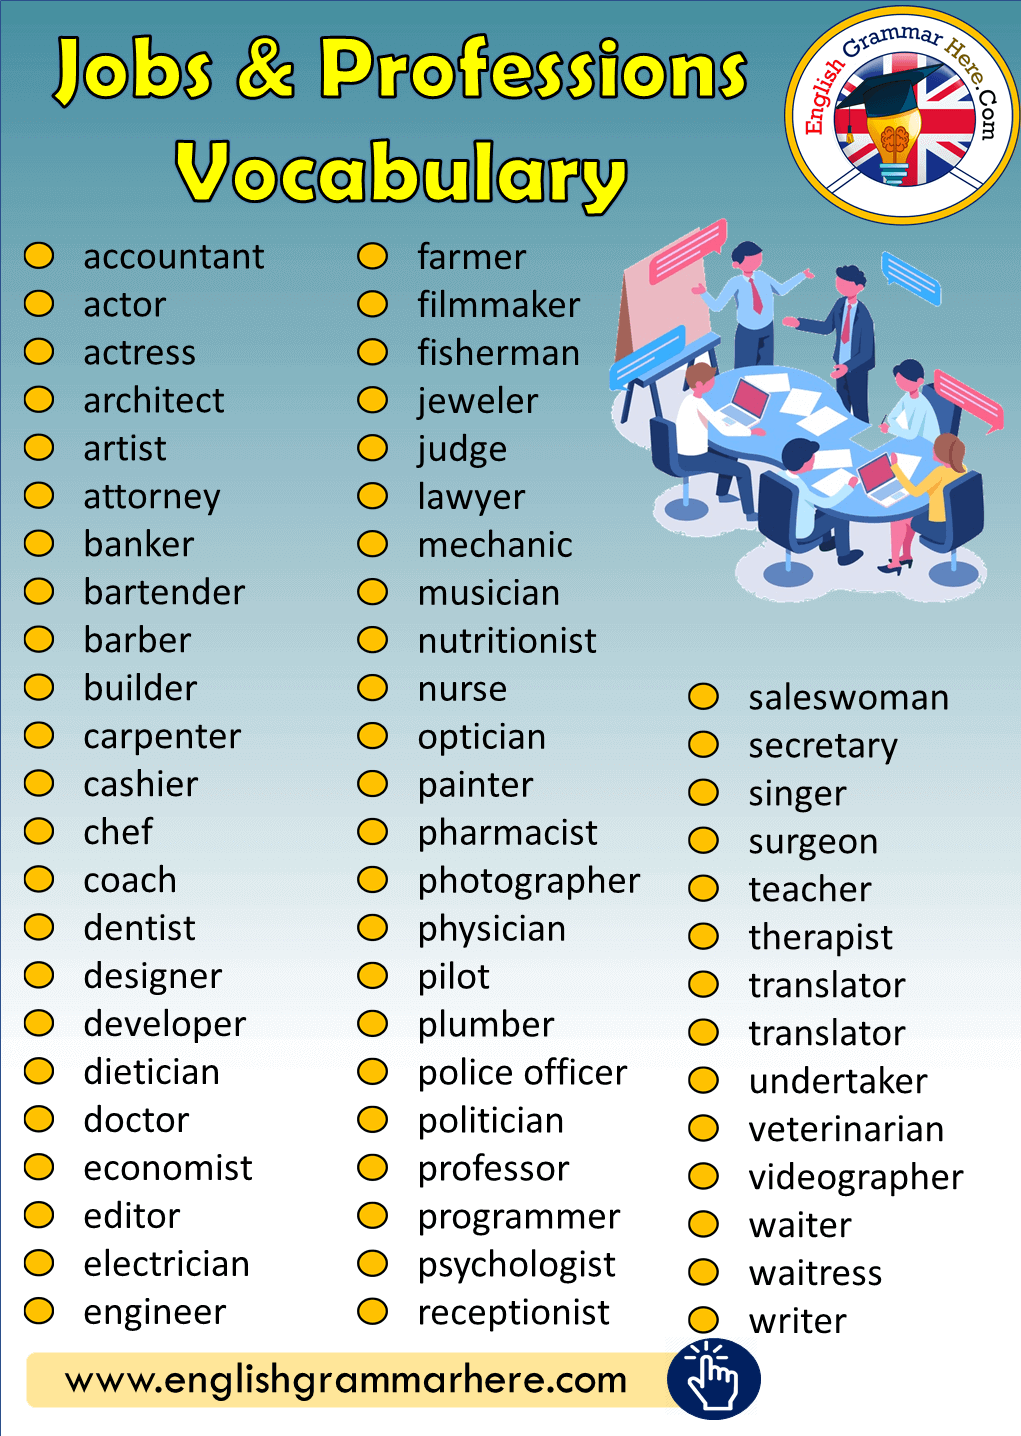 English Jobs & Professions Vocabulary List